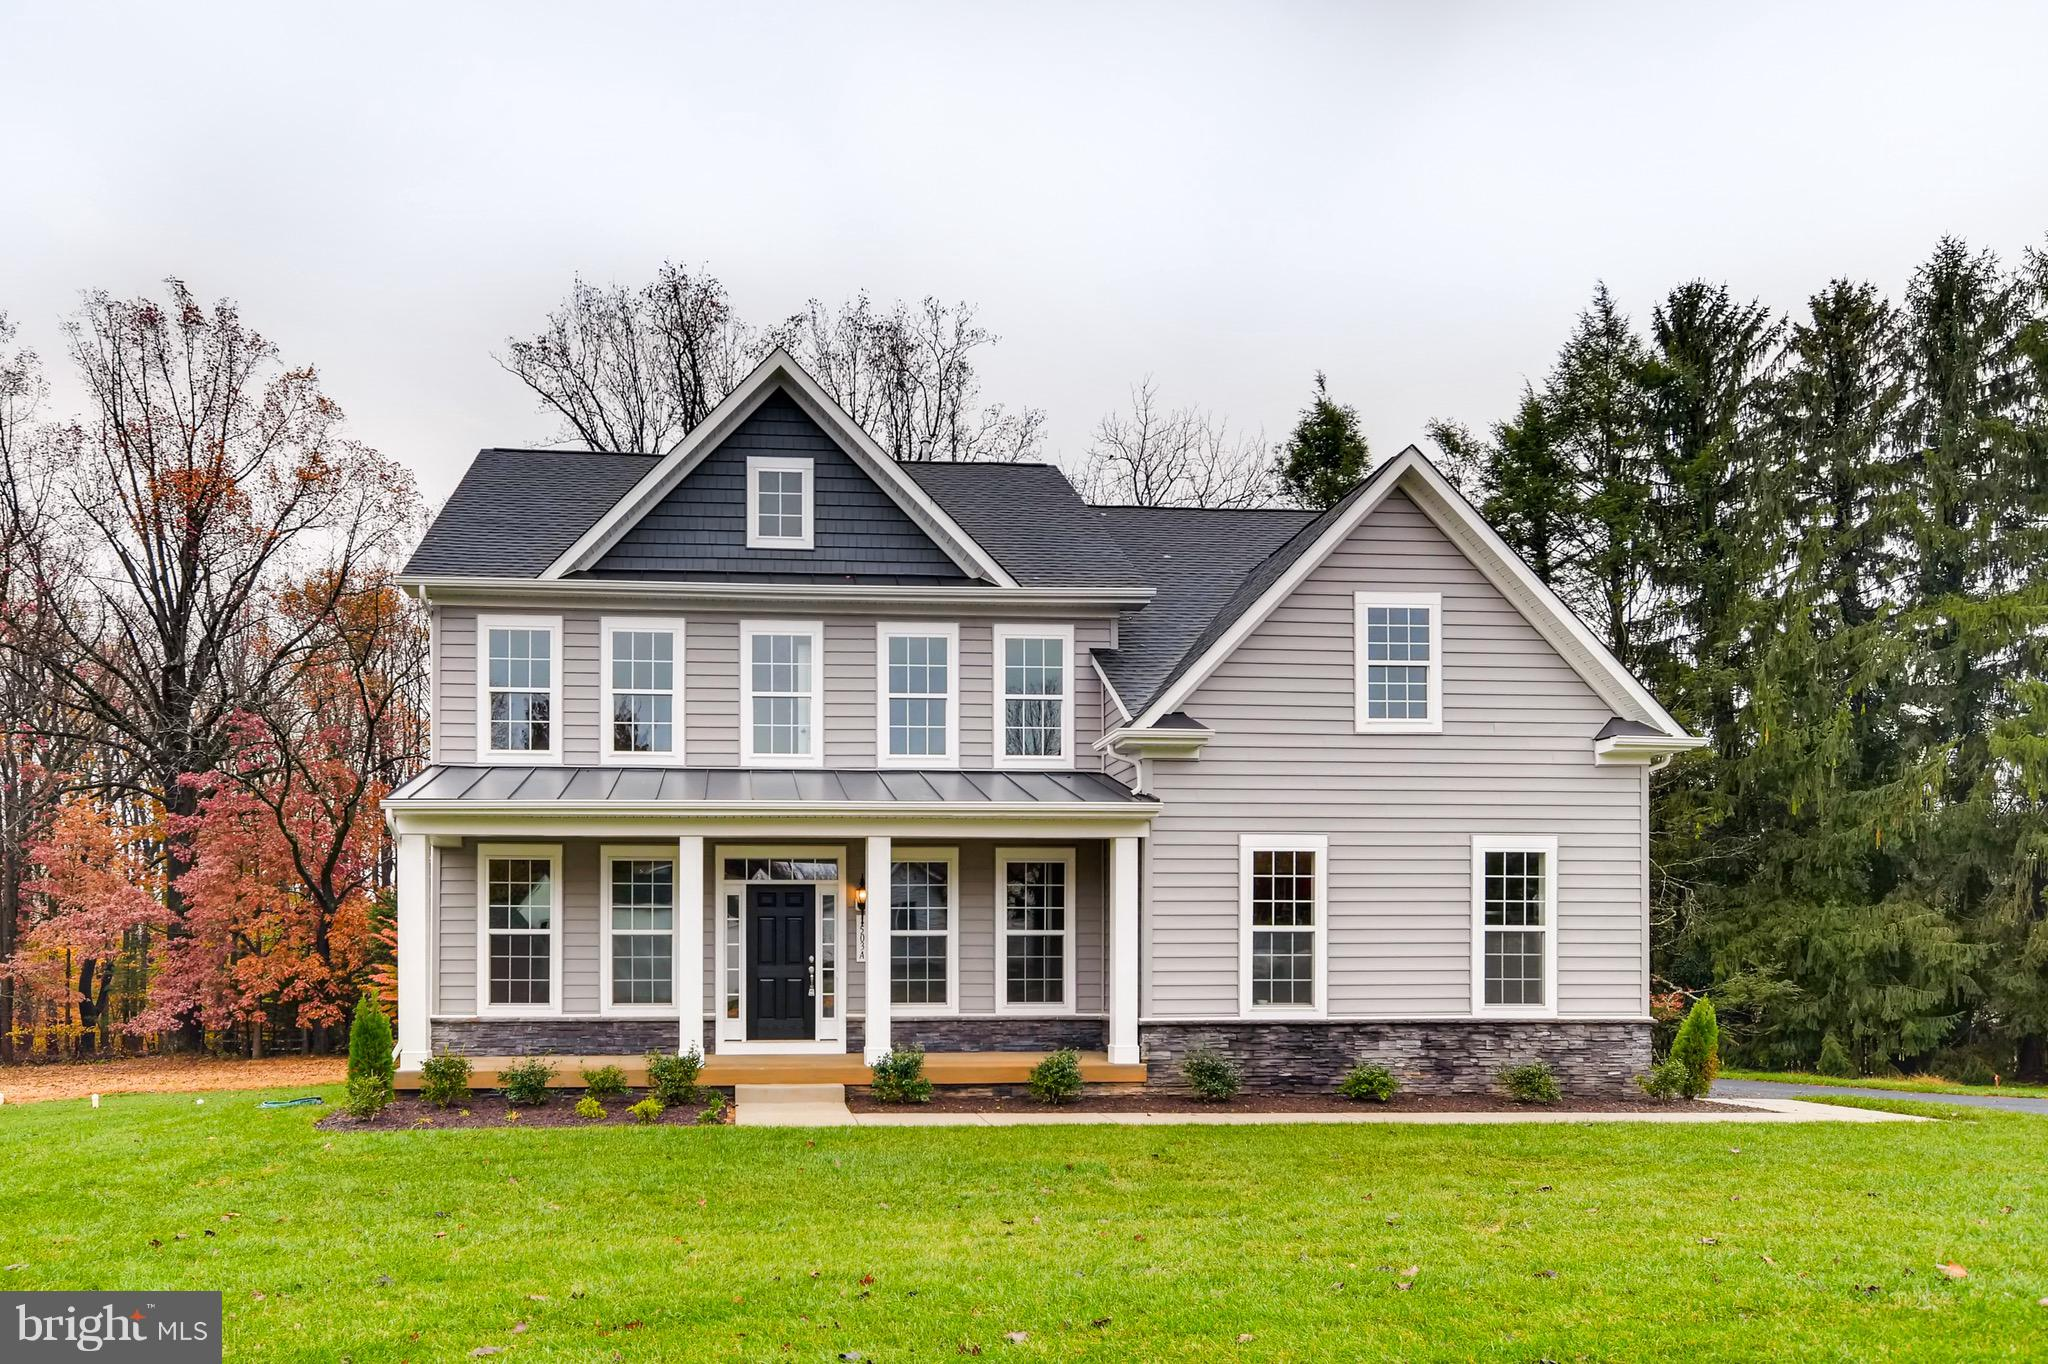 1503A PROVIDENCE ROAD NW, TOWSON, MD 21286